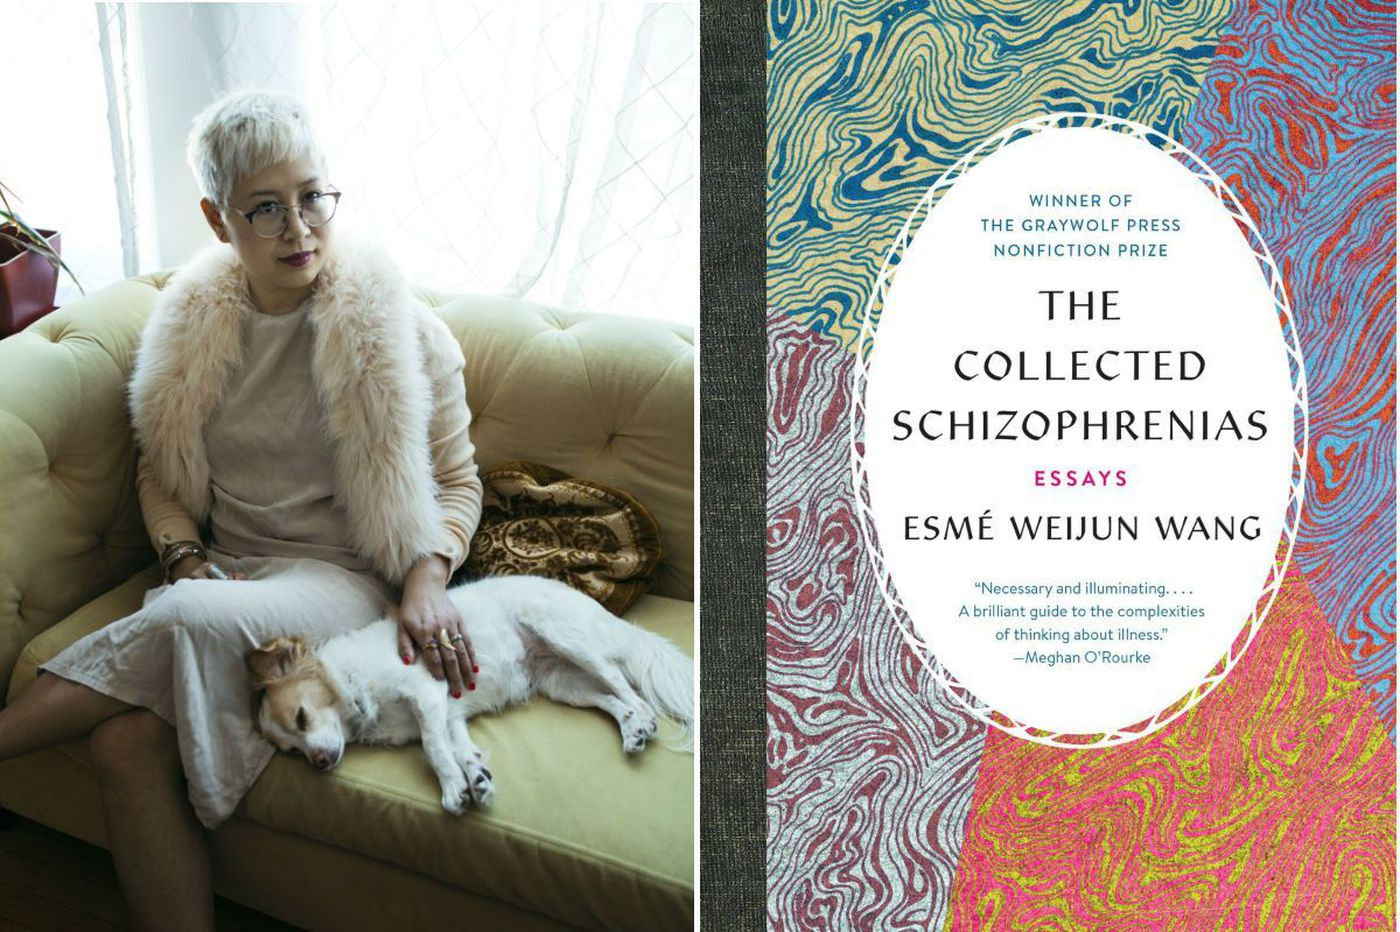 Esmé Weijun Wang's 'Collected Schizophrenias': How to live with a 'slippery mind'